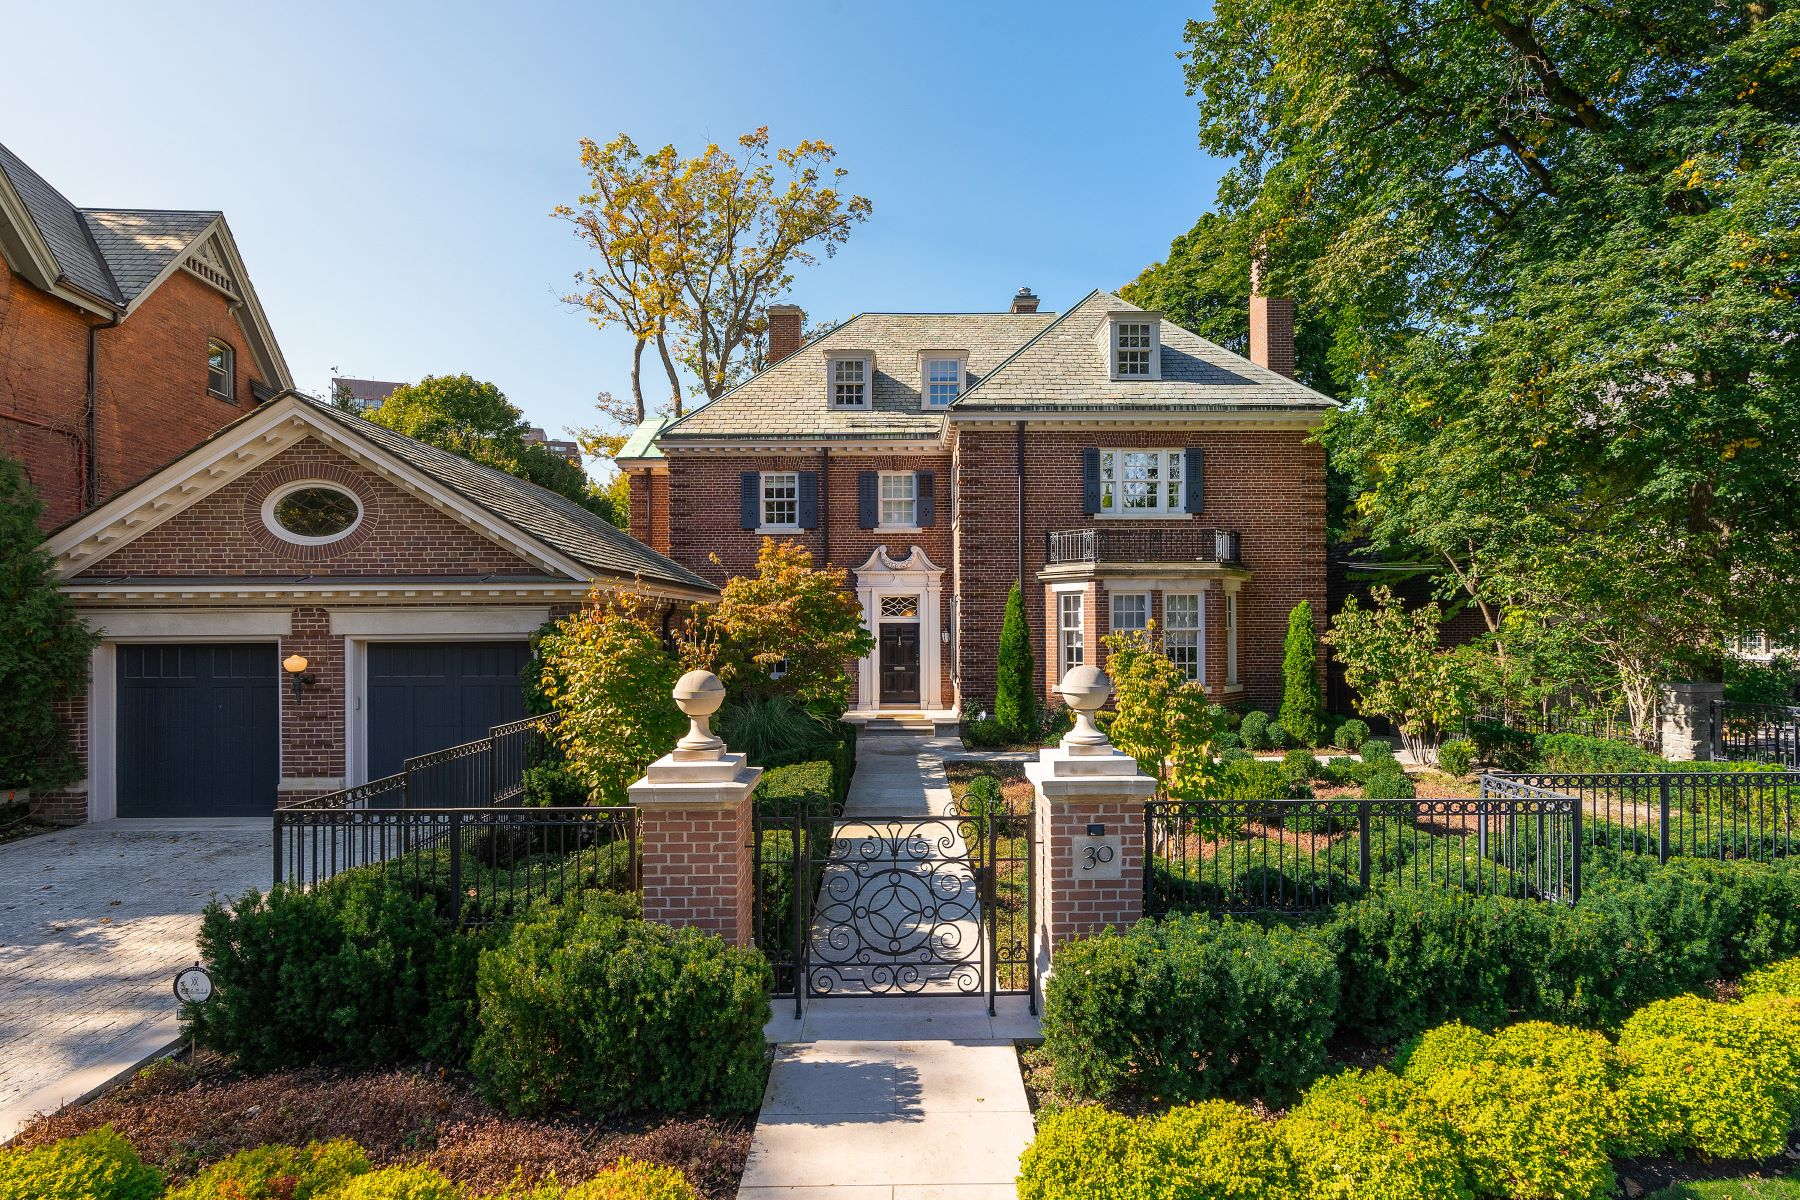 Single Family Home for Sale at Sophisticated Rosedale Living 30 Rosedale Road Toronto, Ontario M4W 2P3 Canada